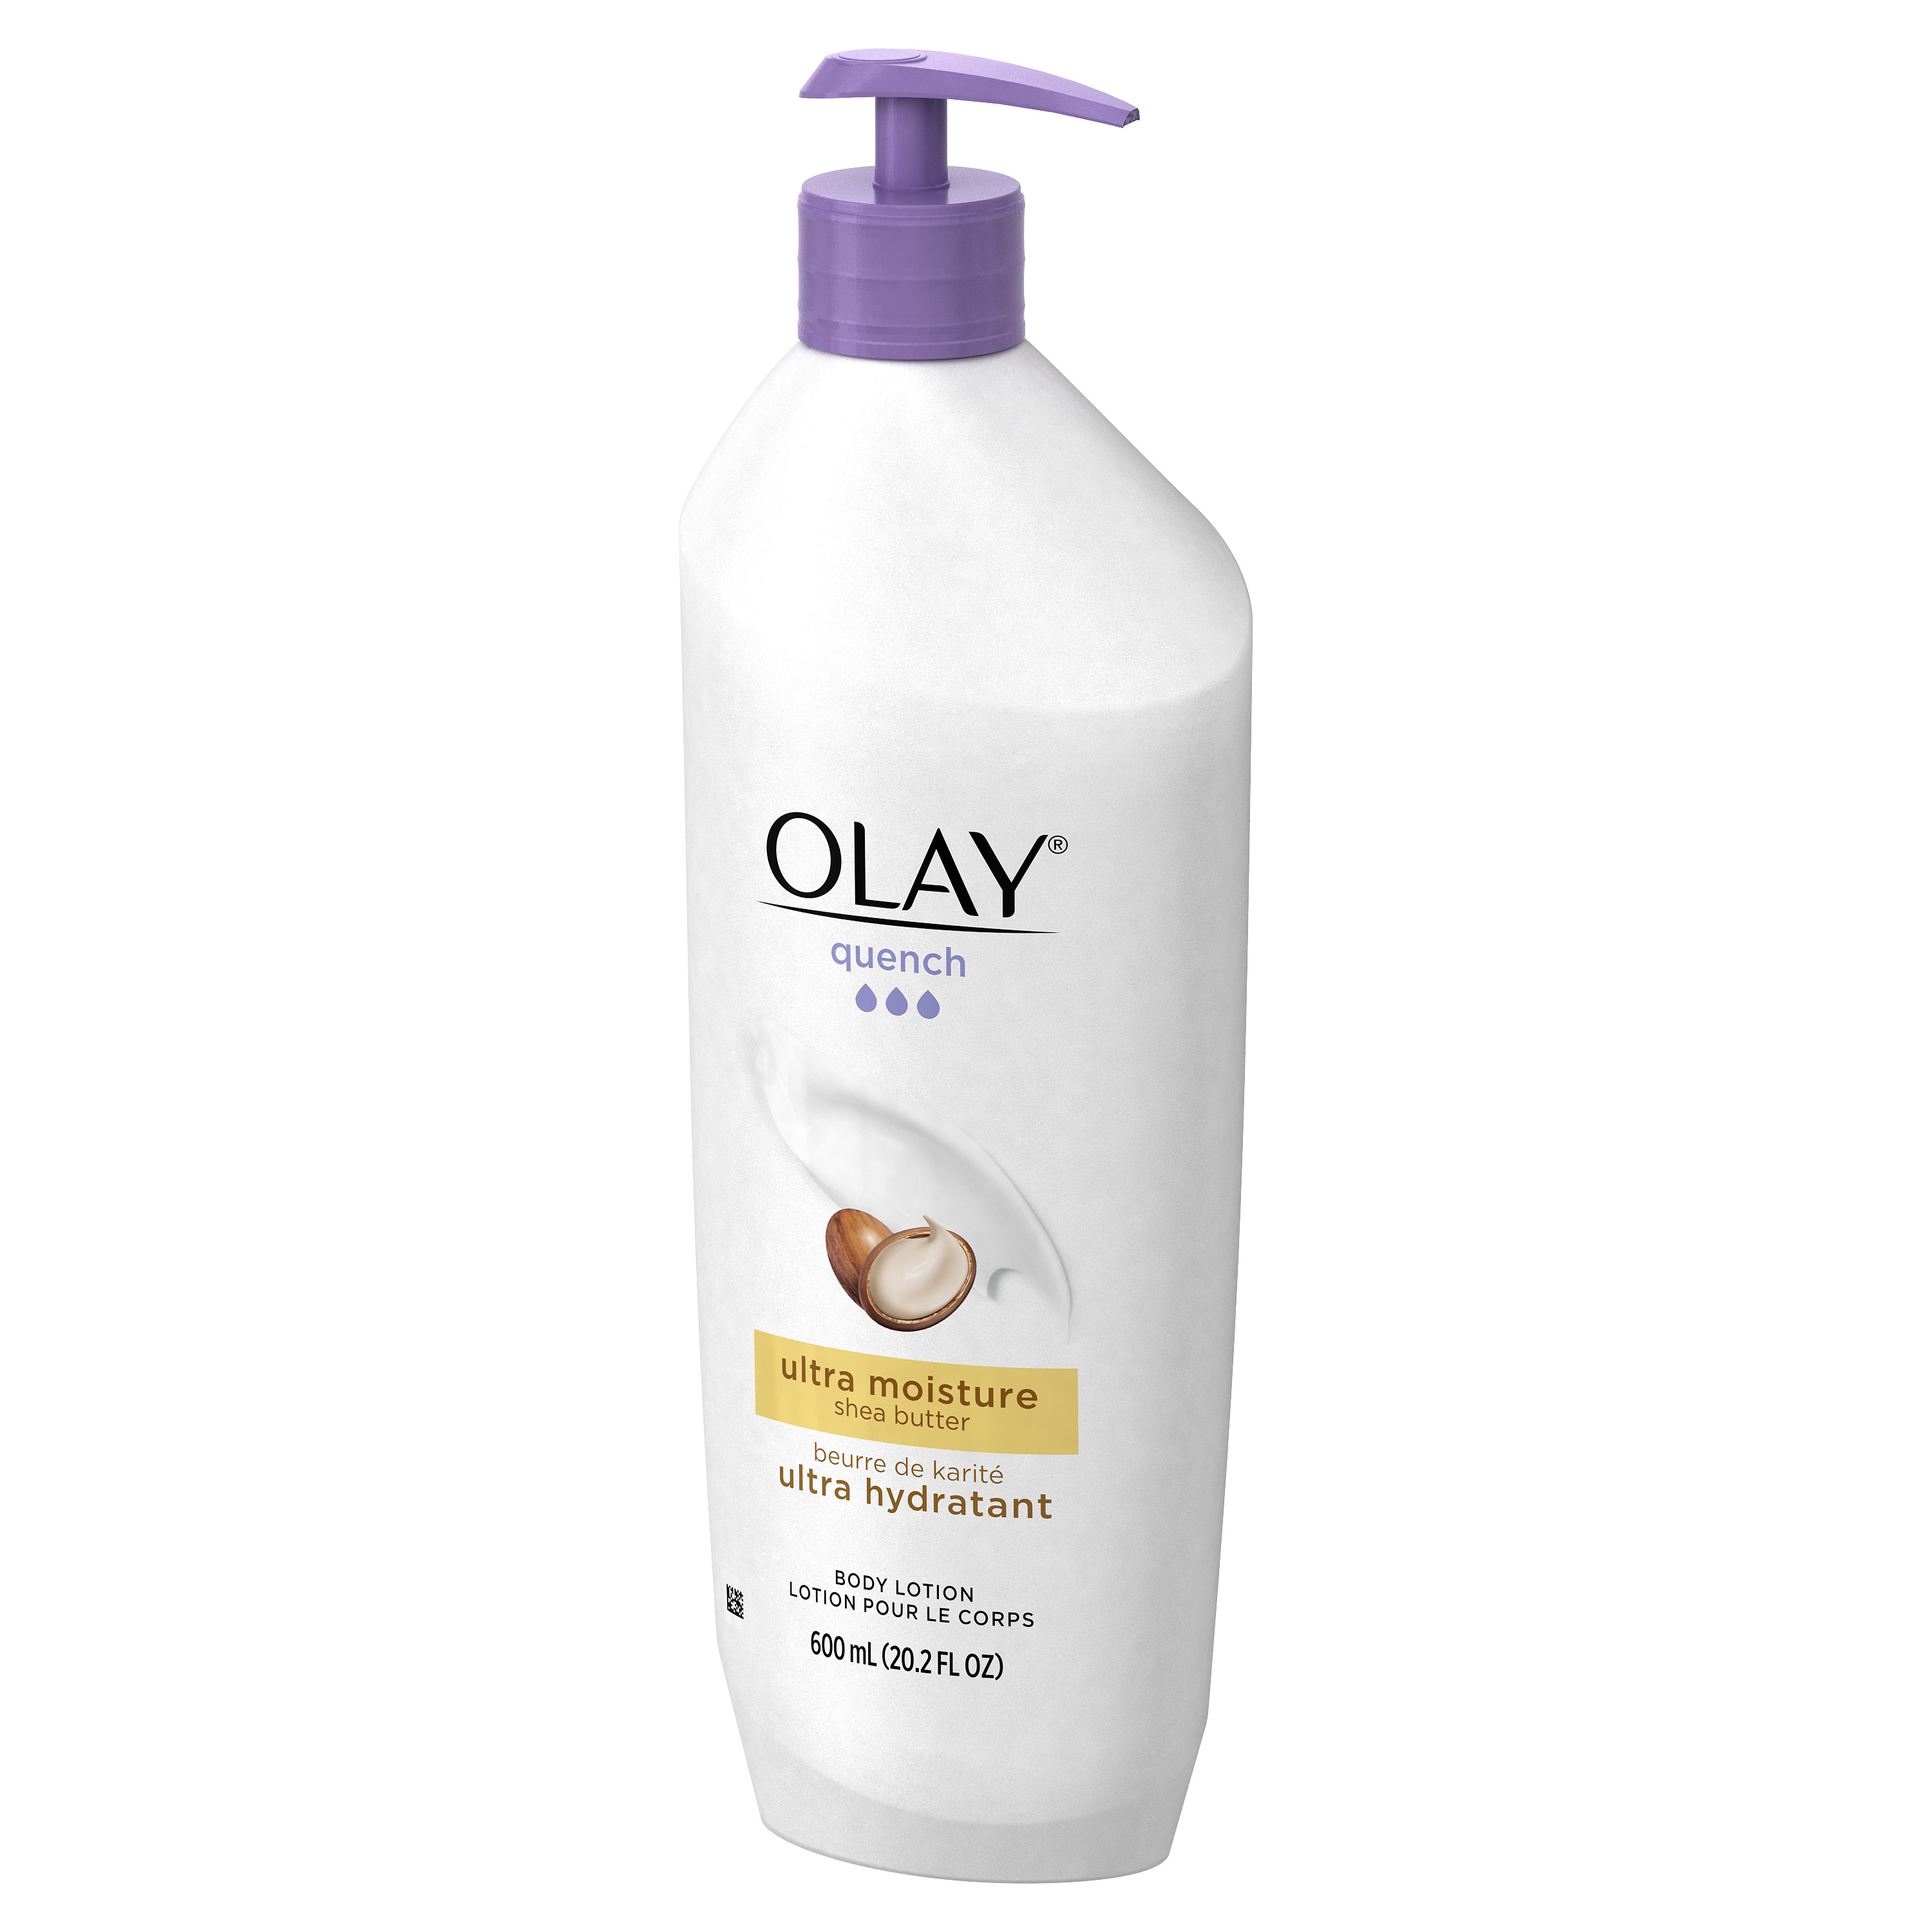 Olay Quench Ultra Moisture Shea Butter Body Lotion 20 2 Fl Oz